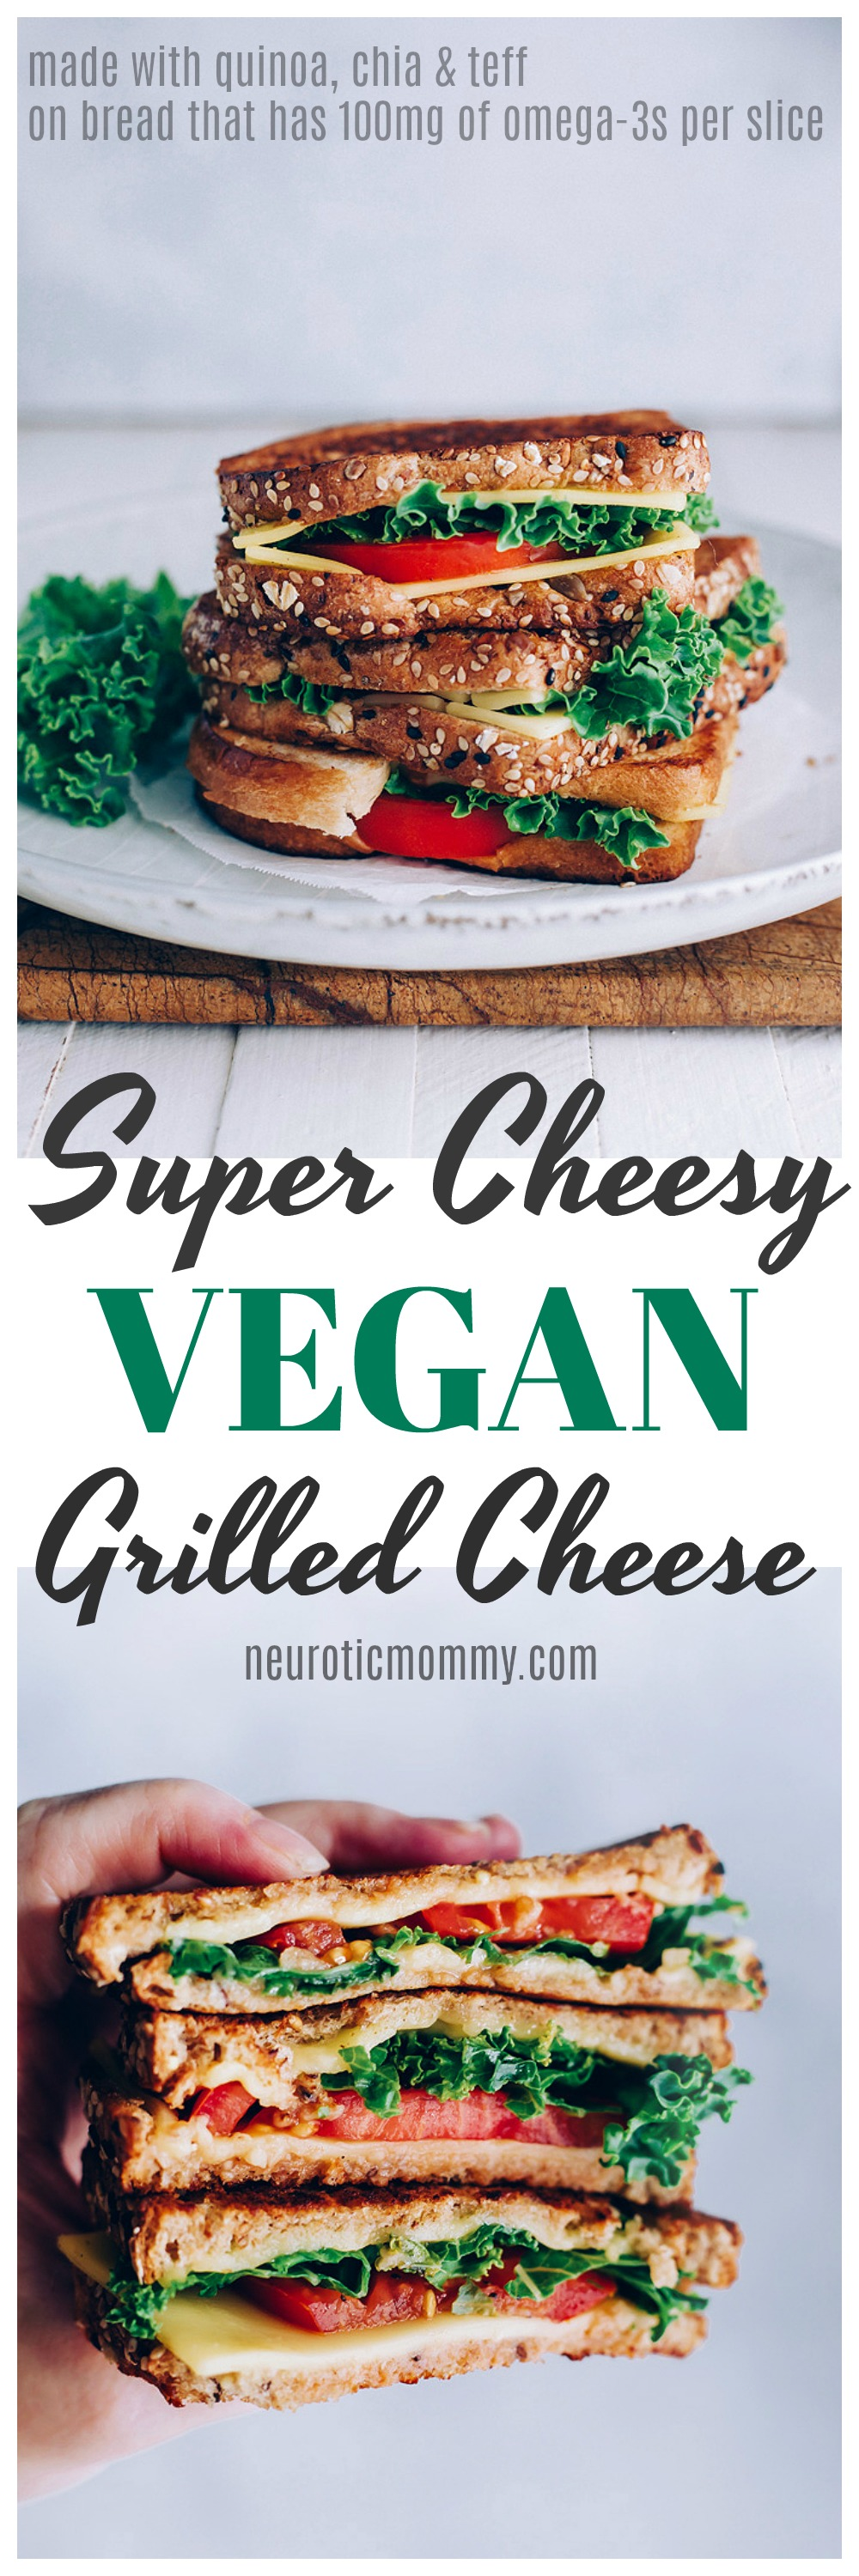 Super Cheesy Vegan Grilled Cheese - A gloriously gooey grilled cheese making this the ultimate sandwich at home the whole family will be sure to devour! NeuroticMommy.com #veganlunches #vegansandwiches